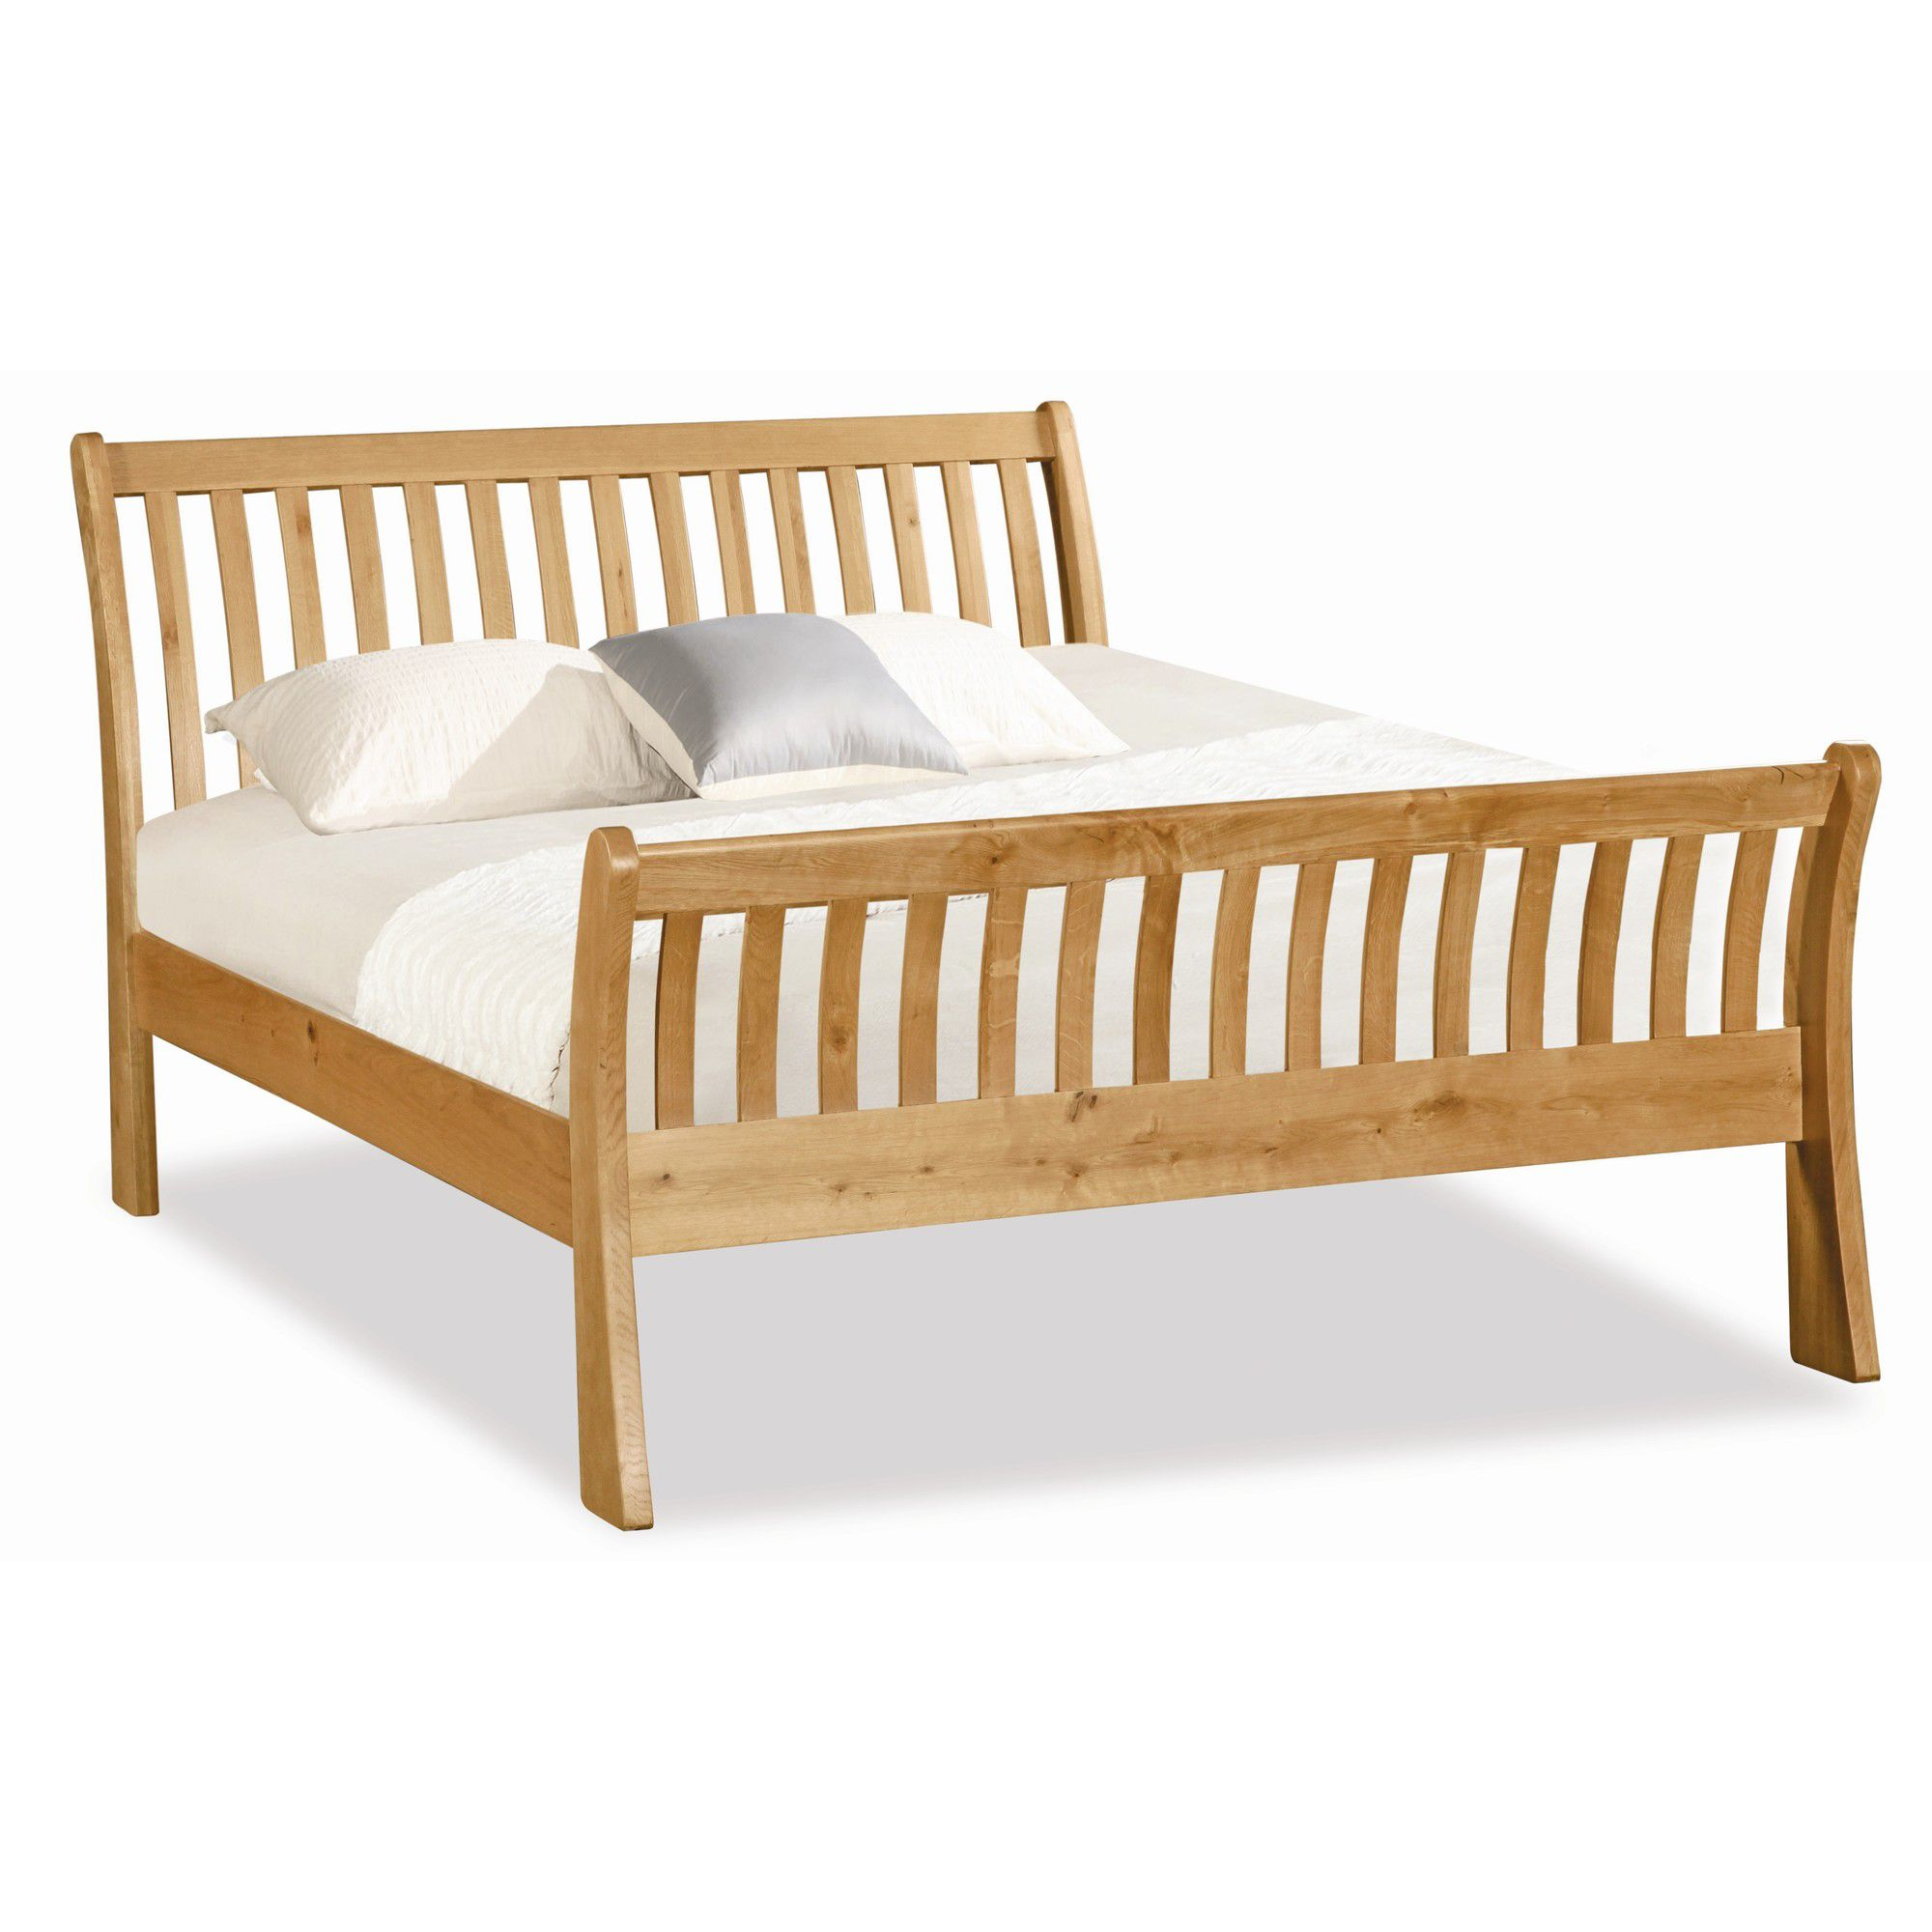 Alterton Furniture Pemberley Sleigh Bed - King at Tesco Direct